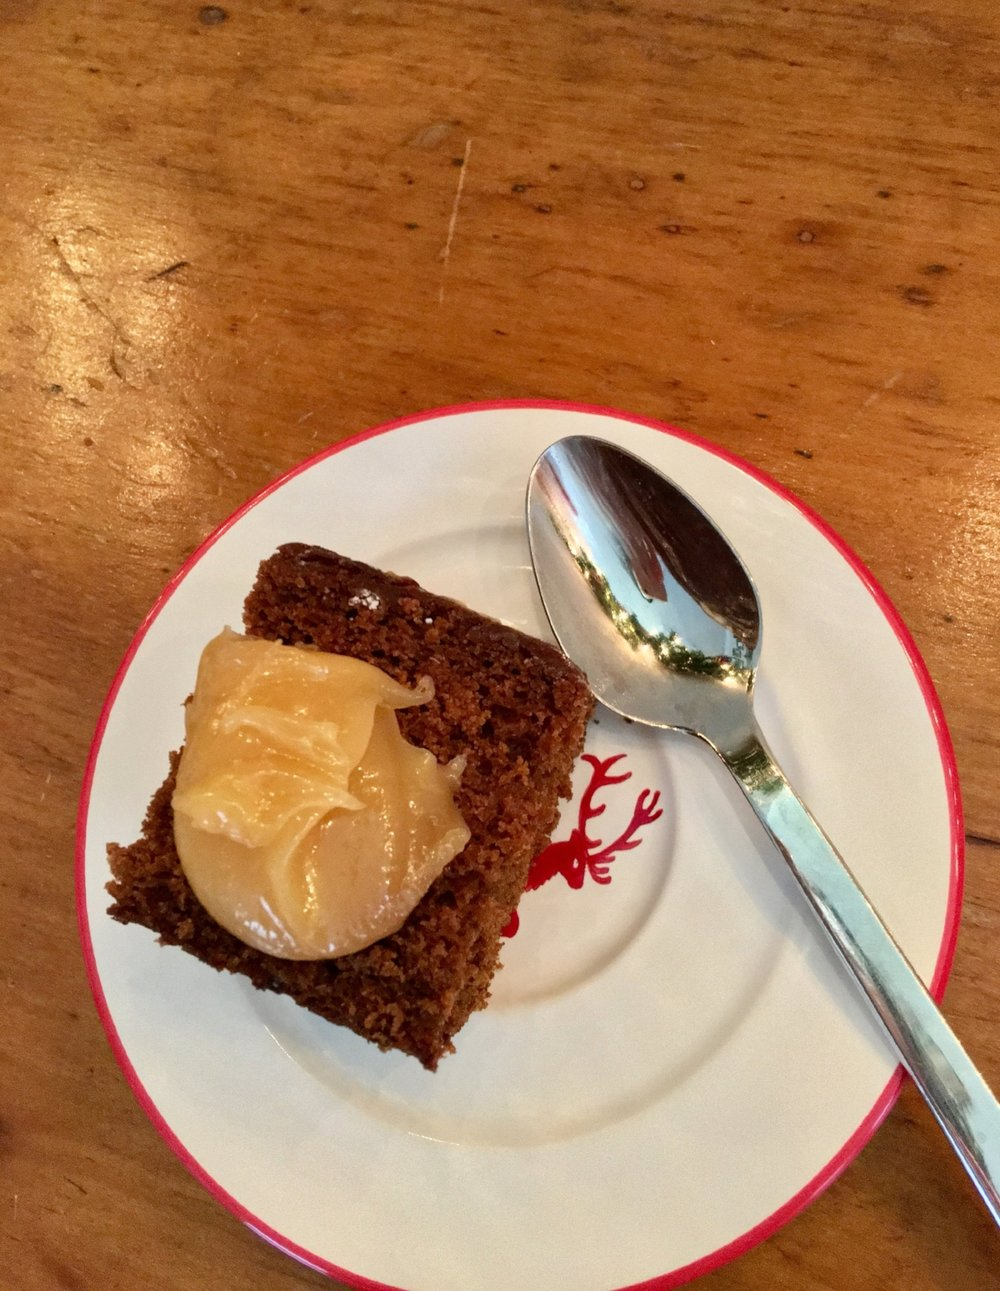 That dollop of lemon curd is so tart - I love how it combines with the spicy flavor of the gingerbread cake! And this sweet little red-rimmed plate with a reindeer in the center is part of a set Kurt and I were given as a wedding gift. I love to use them during the holiday season!